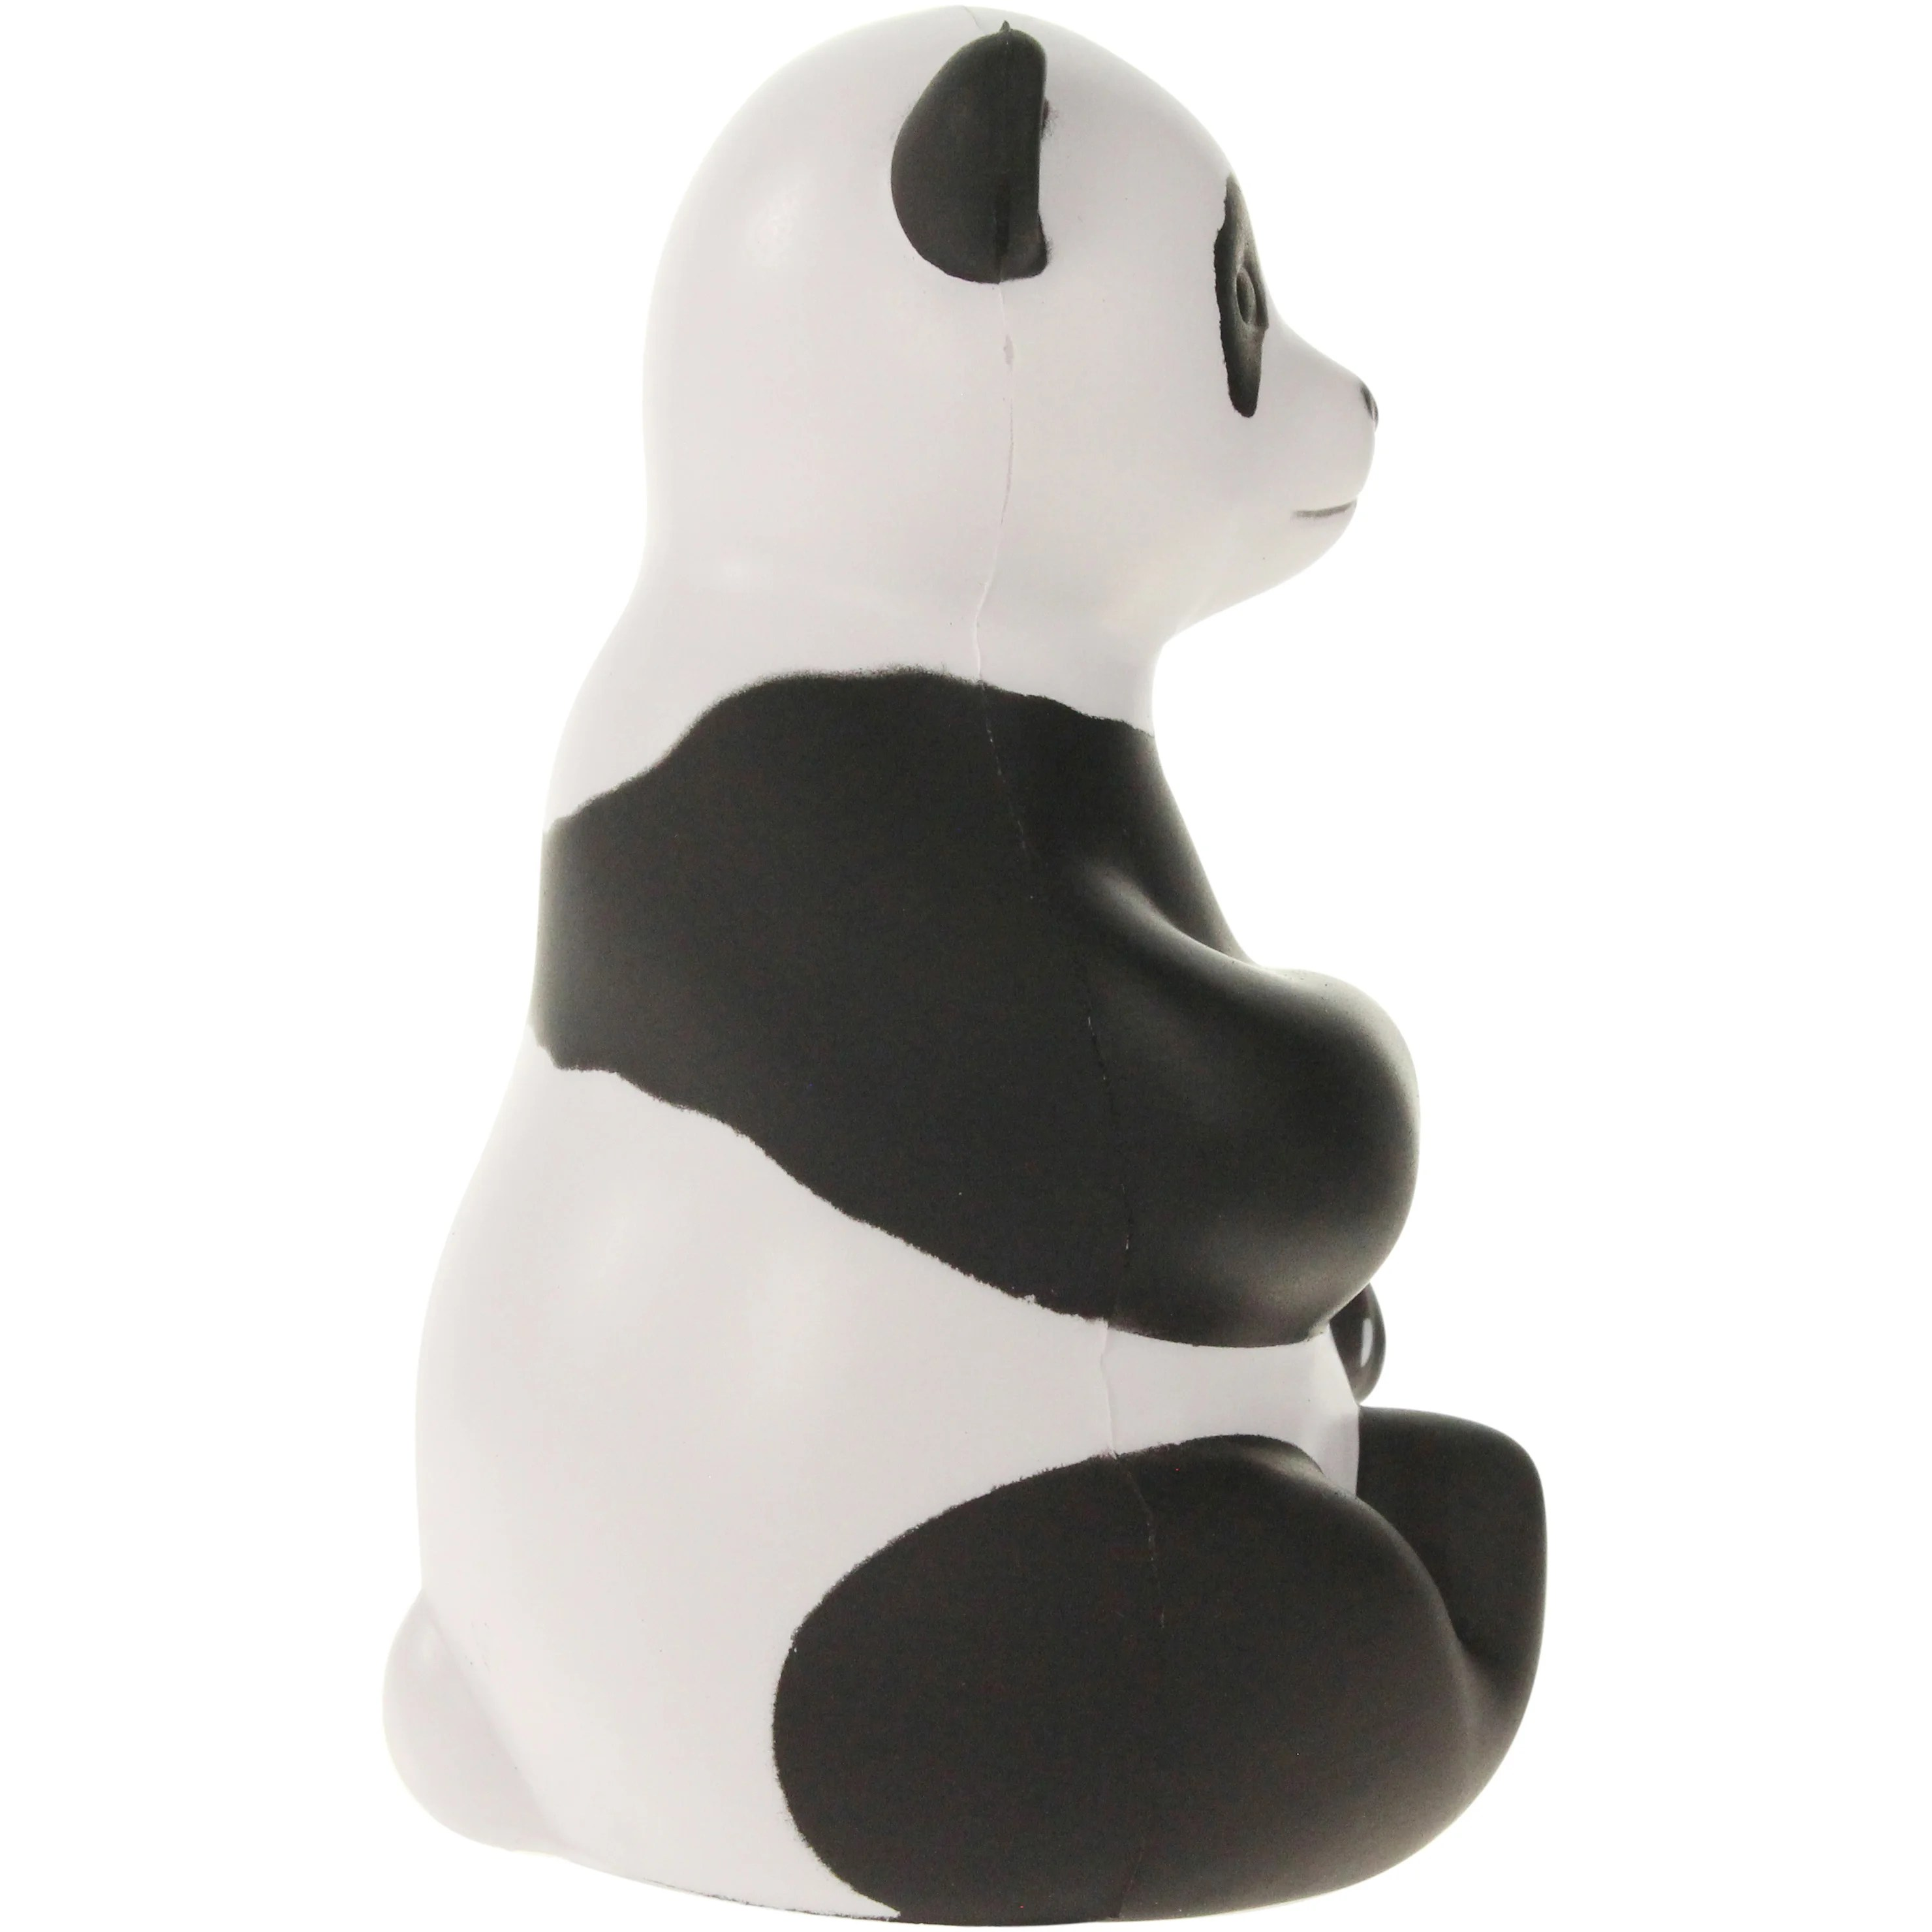 panda bean bag chair chess table and chairs set promotional sitting stress balls with custom logo for 2 50 ea